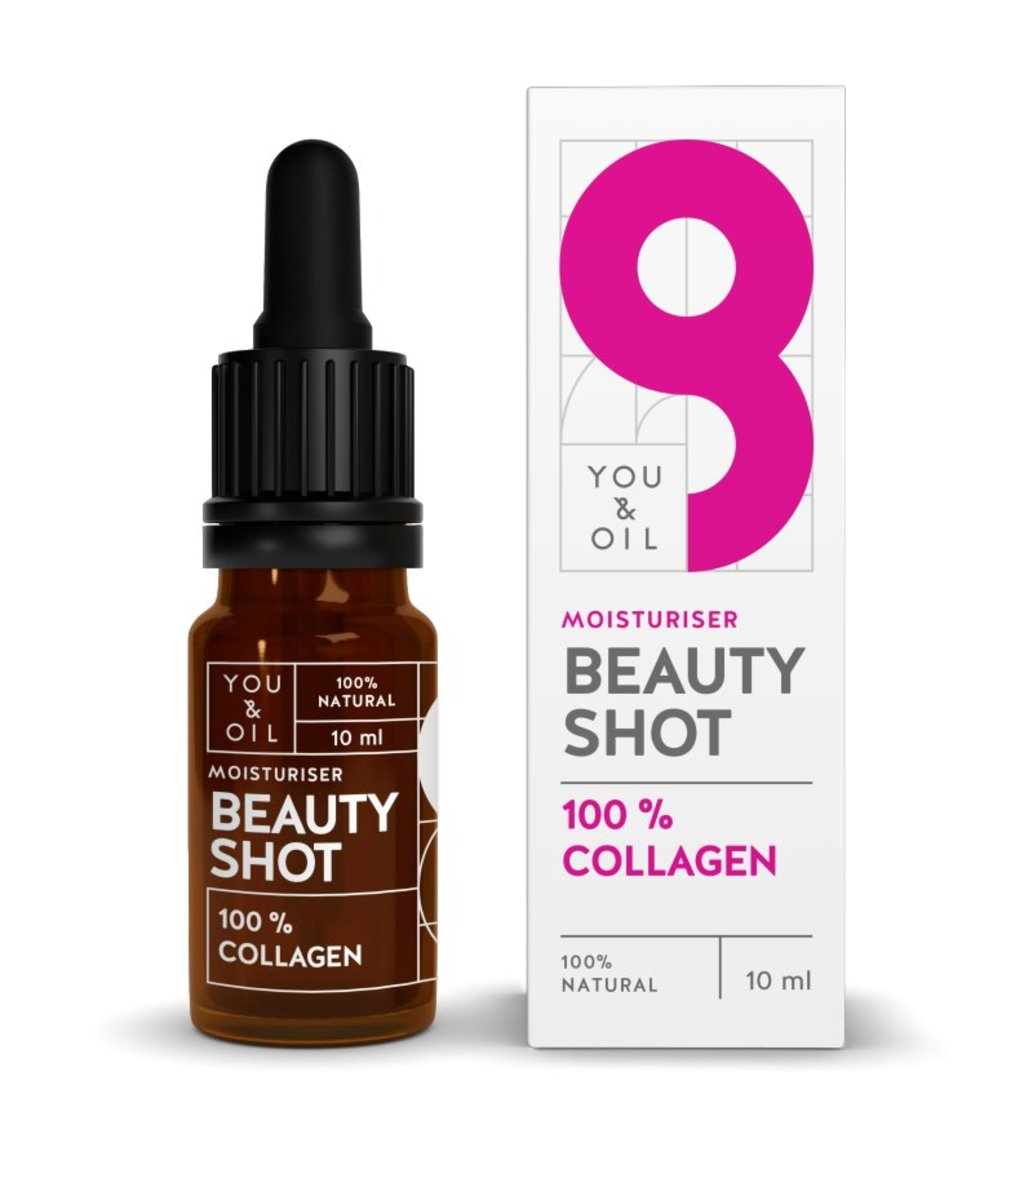 You and Oil - Beauty Shot, Collagen